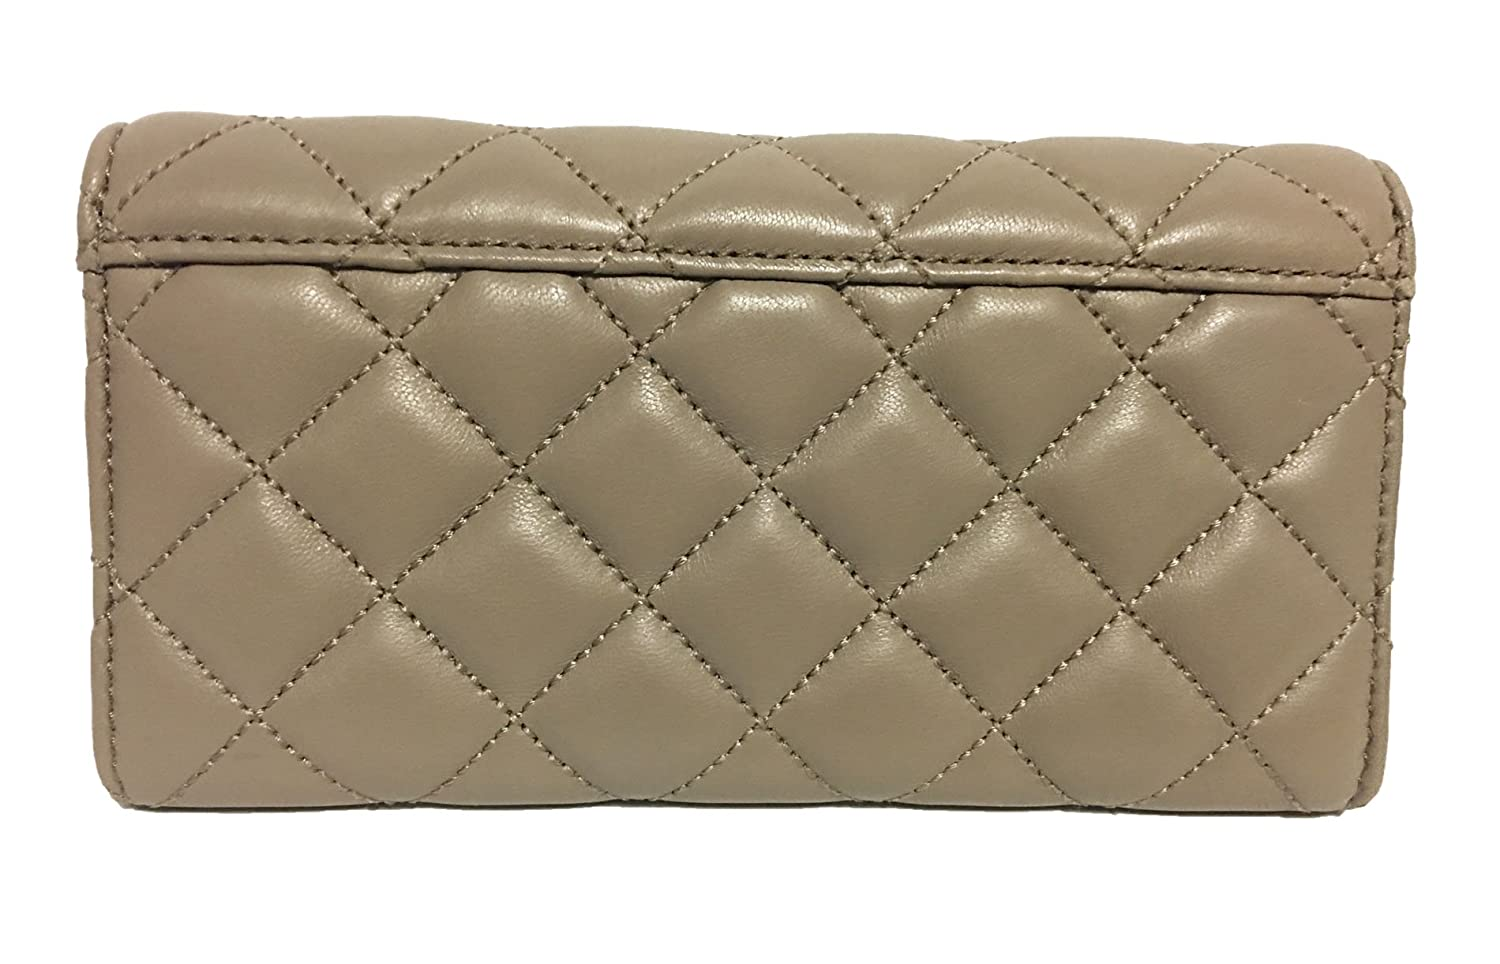 9ffe6c043da0 Amazon.com: MICHAEL Michael Kors Astrid Soft Quilted Leather Carry All  Wallet Dark Taupe/Gold: Shoes